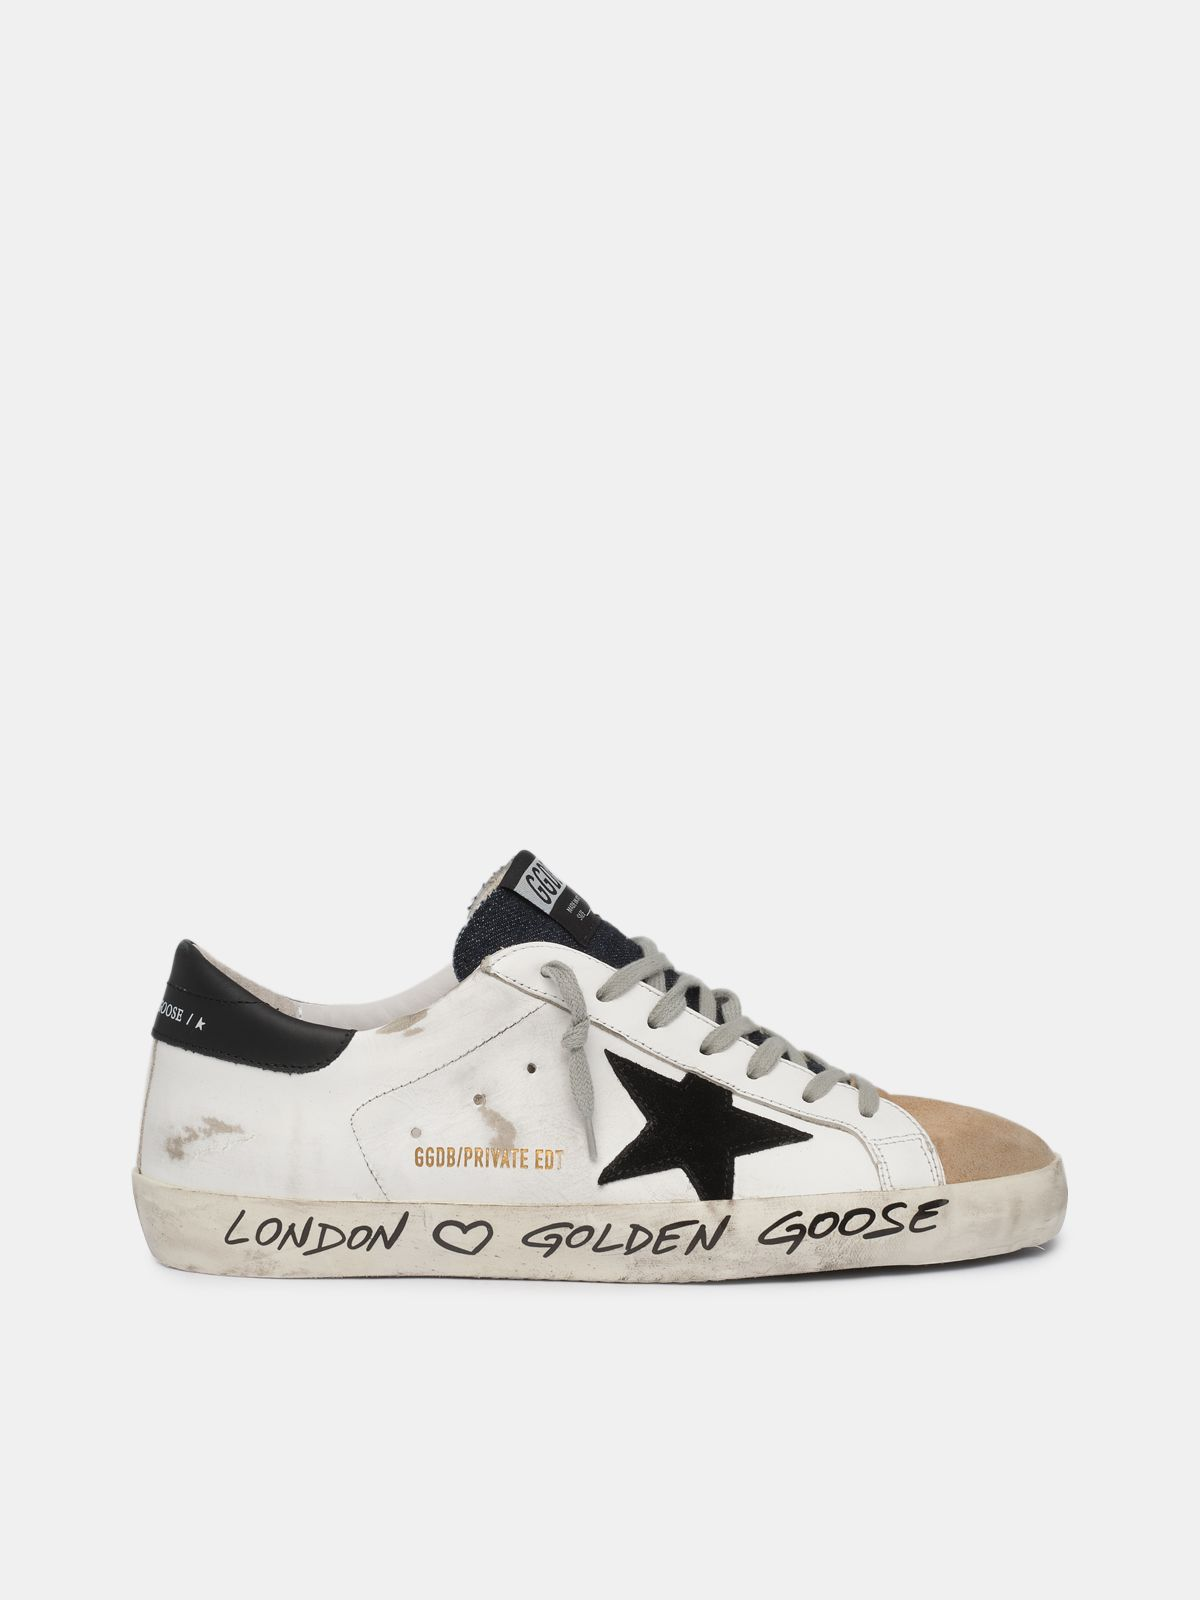 White and beige Super-Star sneakers with handwritten wording